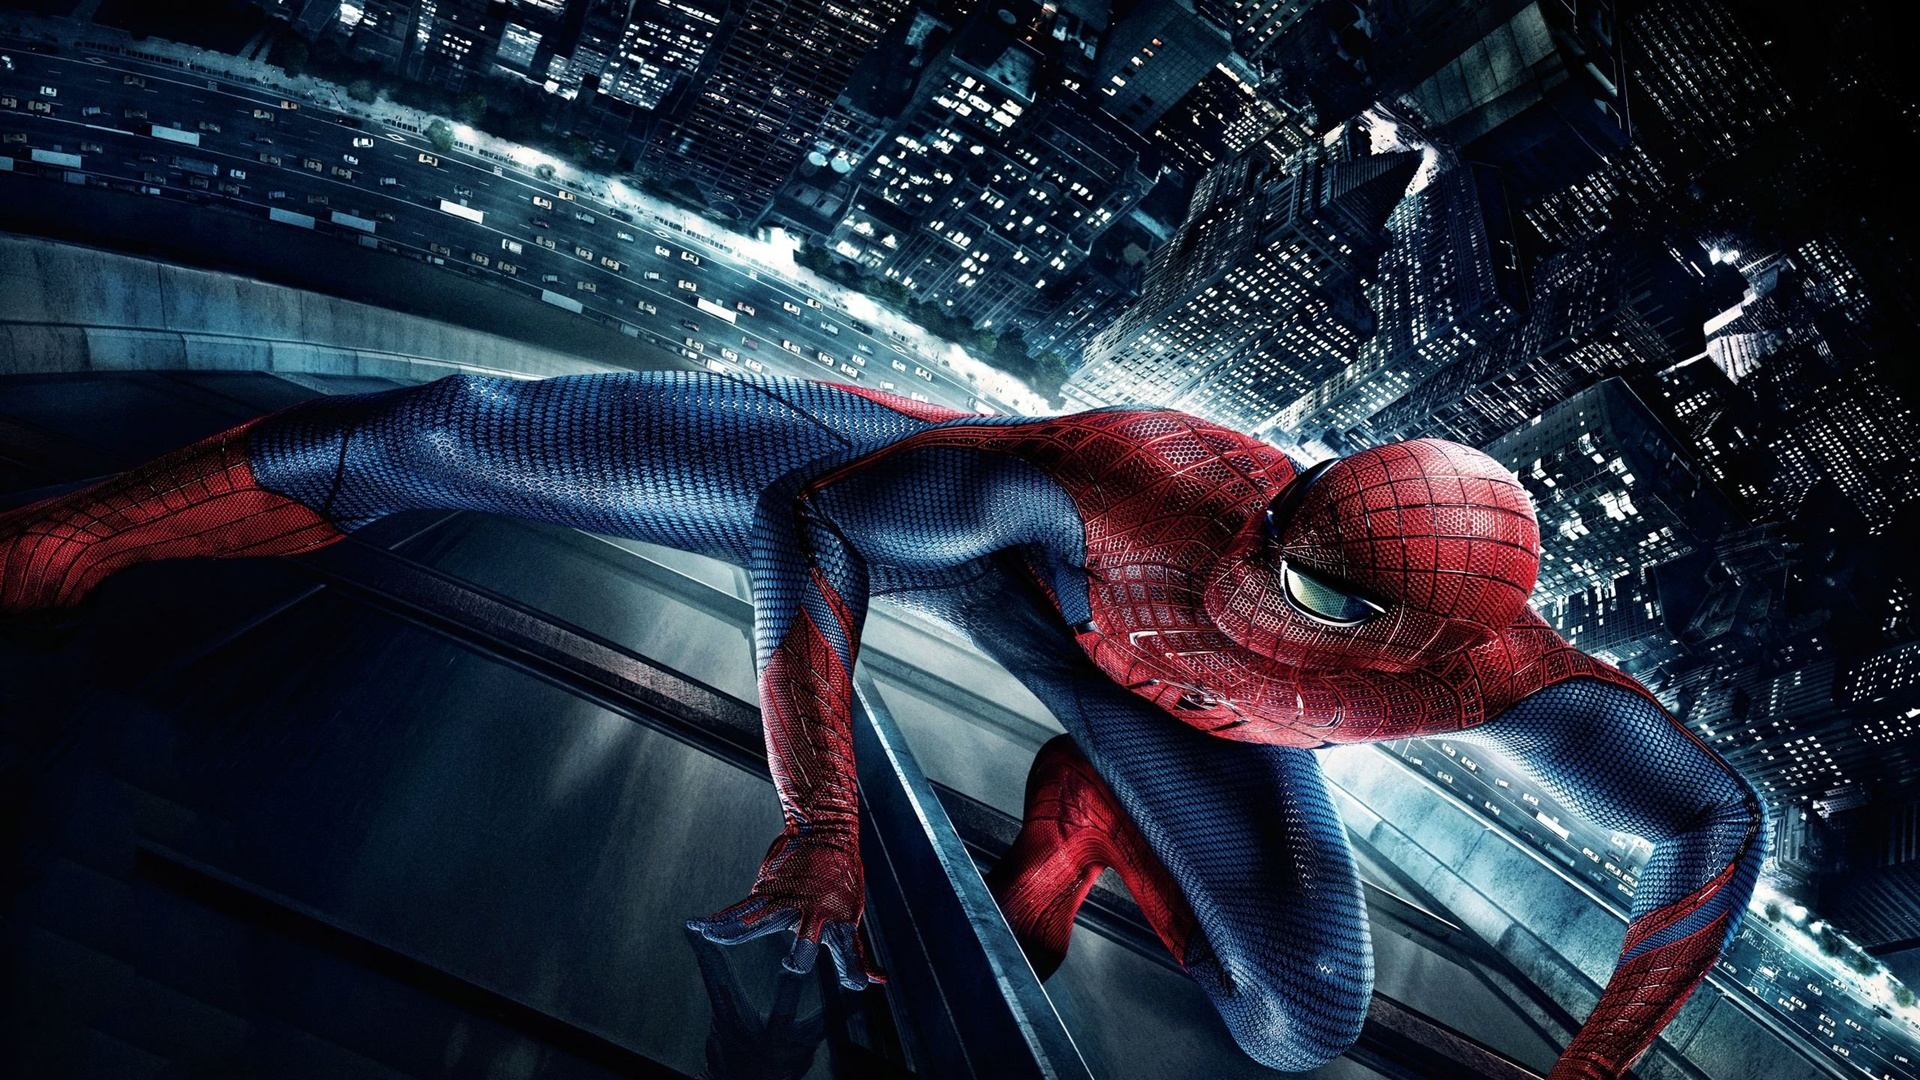 10 Best Spider Man 2099 Wallpaper Hd Full Hd 1920 1080 For: Wallpaper The Amazing Spider-Man Movie HD 2560x1600 HD